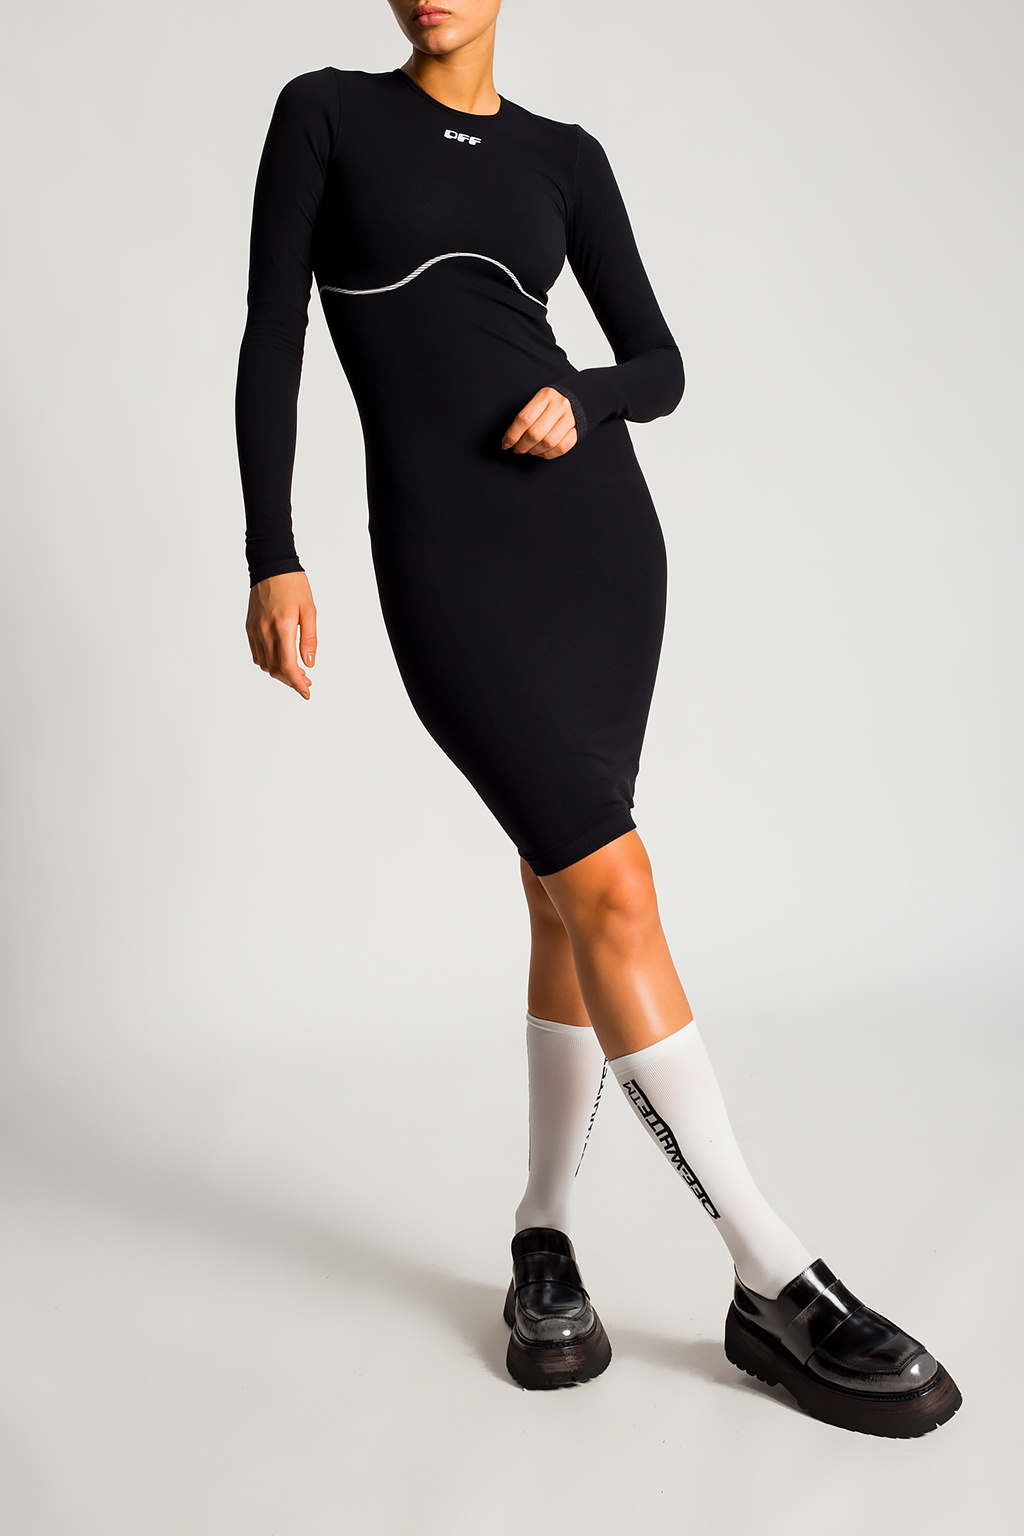 Off-White Fitted dress with logo